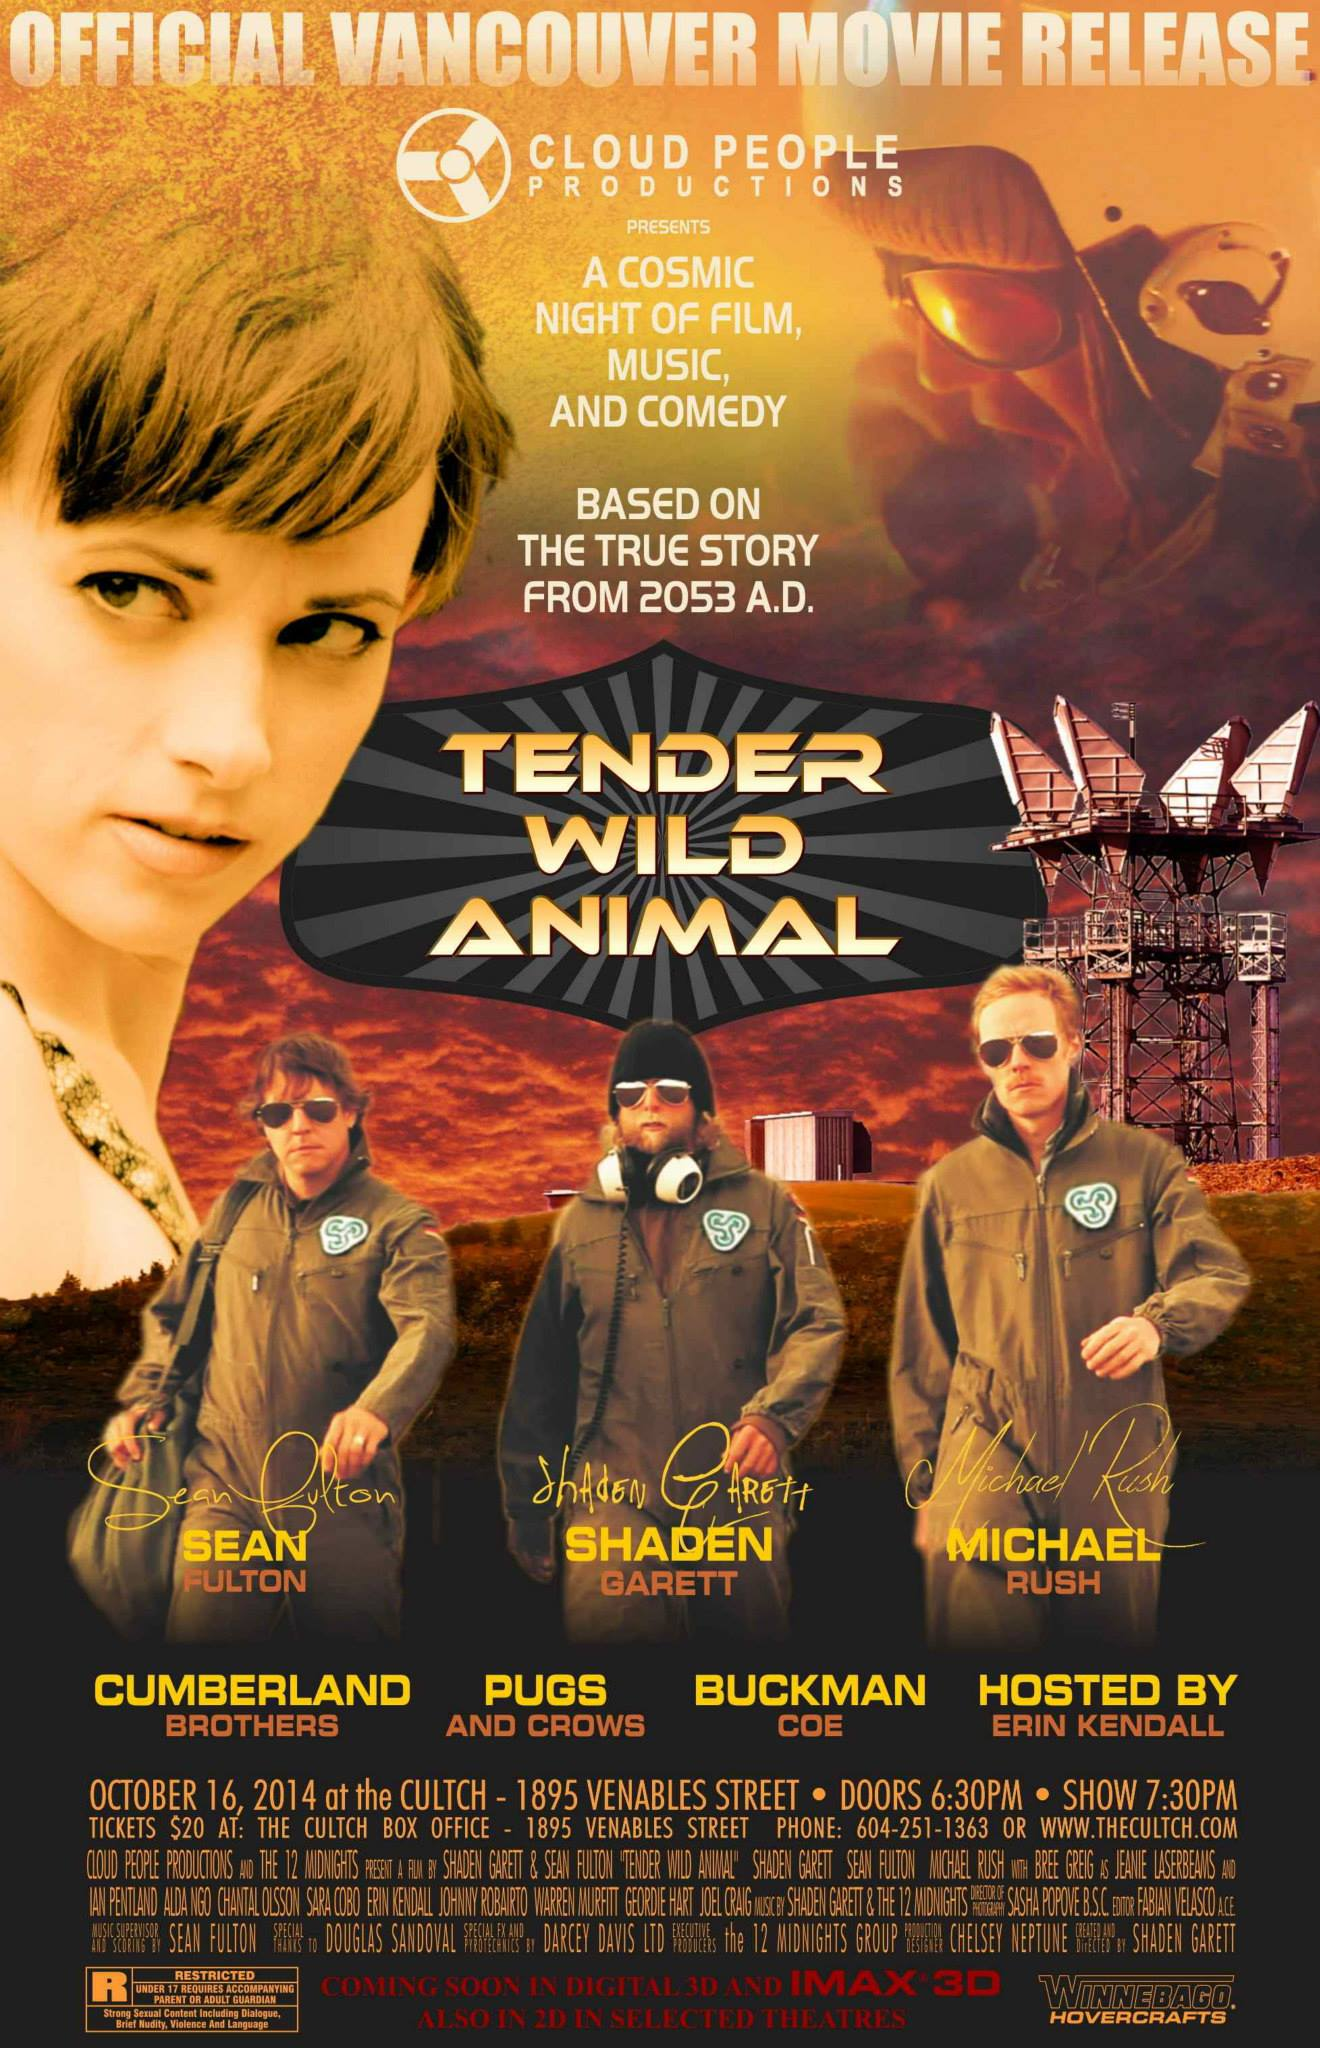 TENDER WILD ANIMAL - movie release AND concert!!!!     Cloud People Productions is proud to present an evening featuring a stellar line-up of film, comedy, and live music from, The CUMBERLAND BROS (featuring Archie Pateman) , Juno award winning PUGS and CROWS, BUCKMAN COE, ERIN KENDALL, and more!!!!!!    This intergalactic fusion of sight and sound will climax with the official unveiling of the latest creation from SHADEN GARETT & SEAN FULTON....The Stunning and Sensational 15 minute Steam-Punk Sci-Fiction movie/video that has been seen by TV and movie goers across the rest of the world FINALLY arrives in the city where it all began!!!    facebook event page